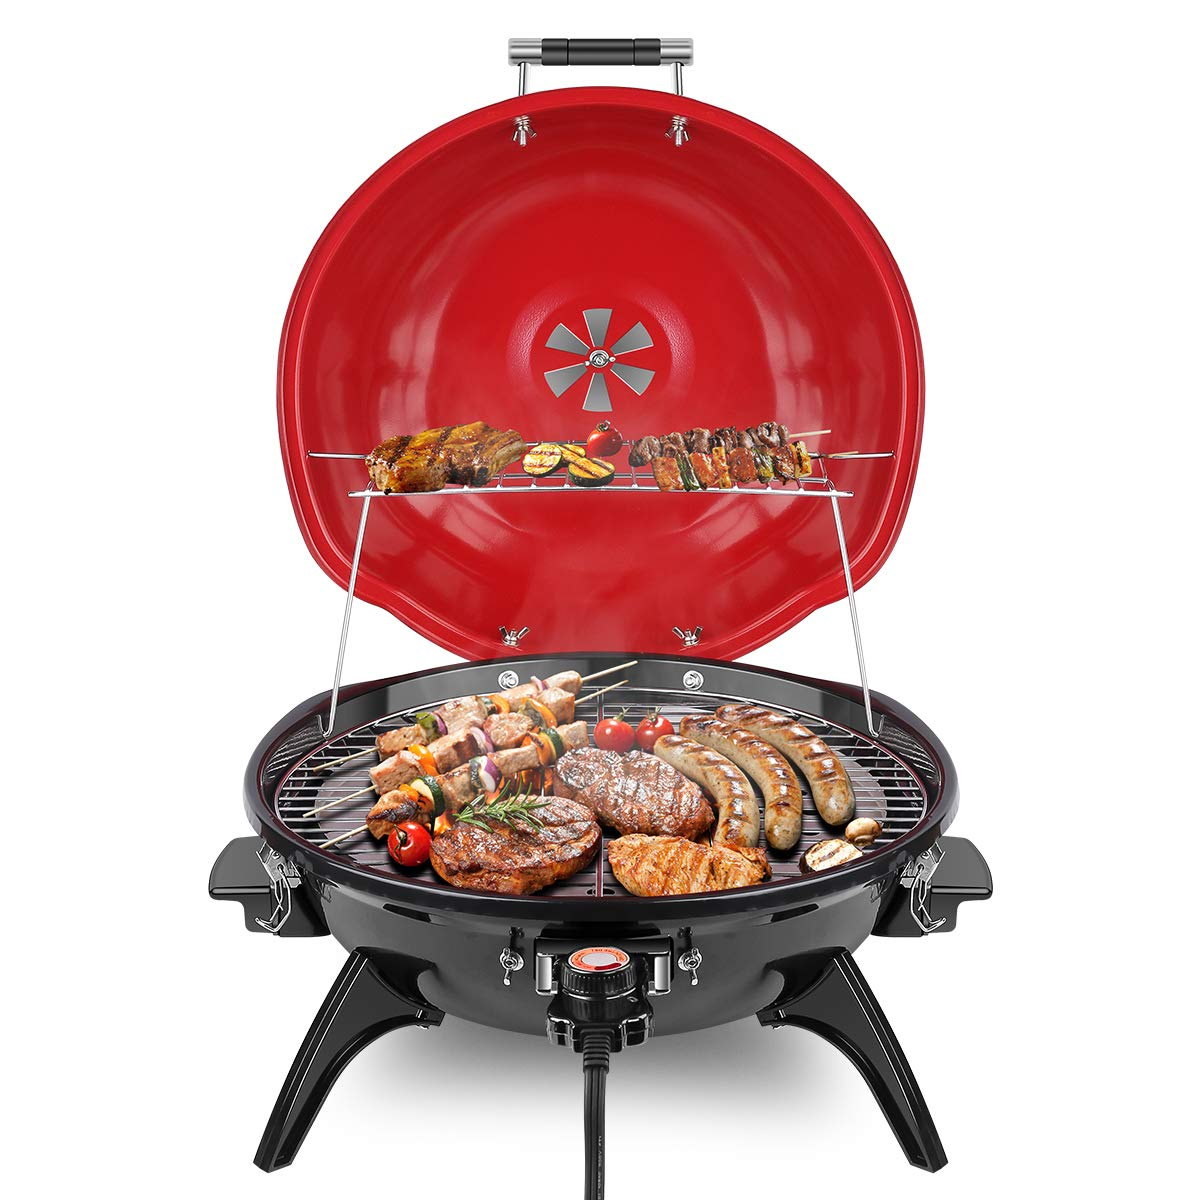 Techwood Electric BBQ Grill 15-Serving Electric Grill Outdoor/Indoor, Nonstick Portable Grill 1600W, Red by Techwood